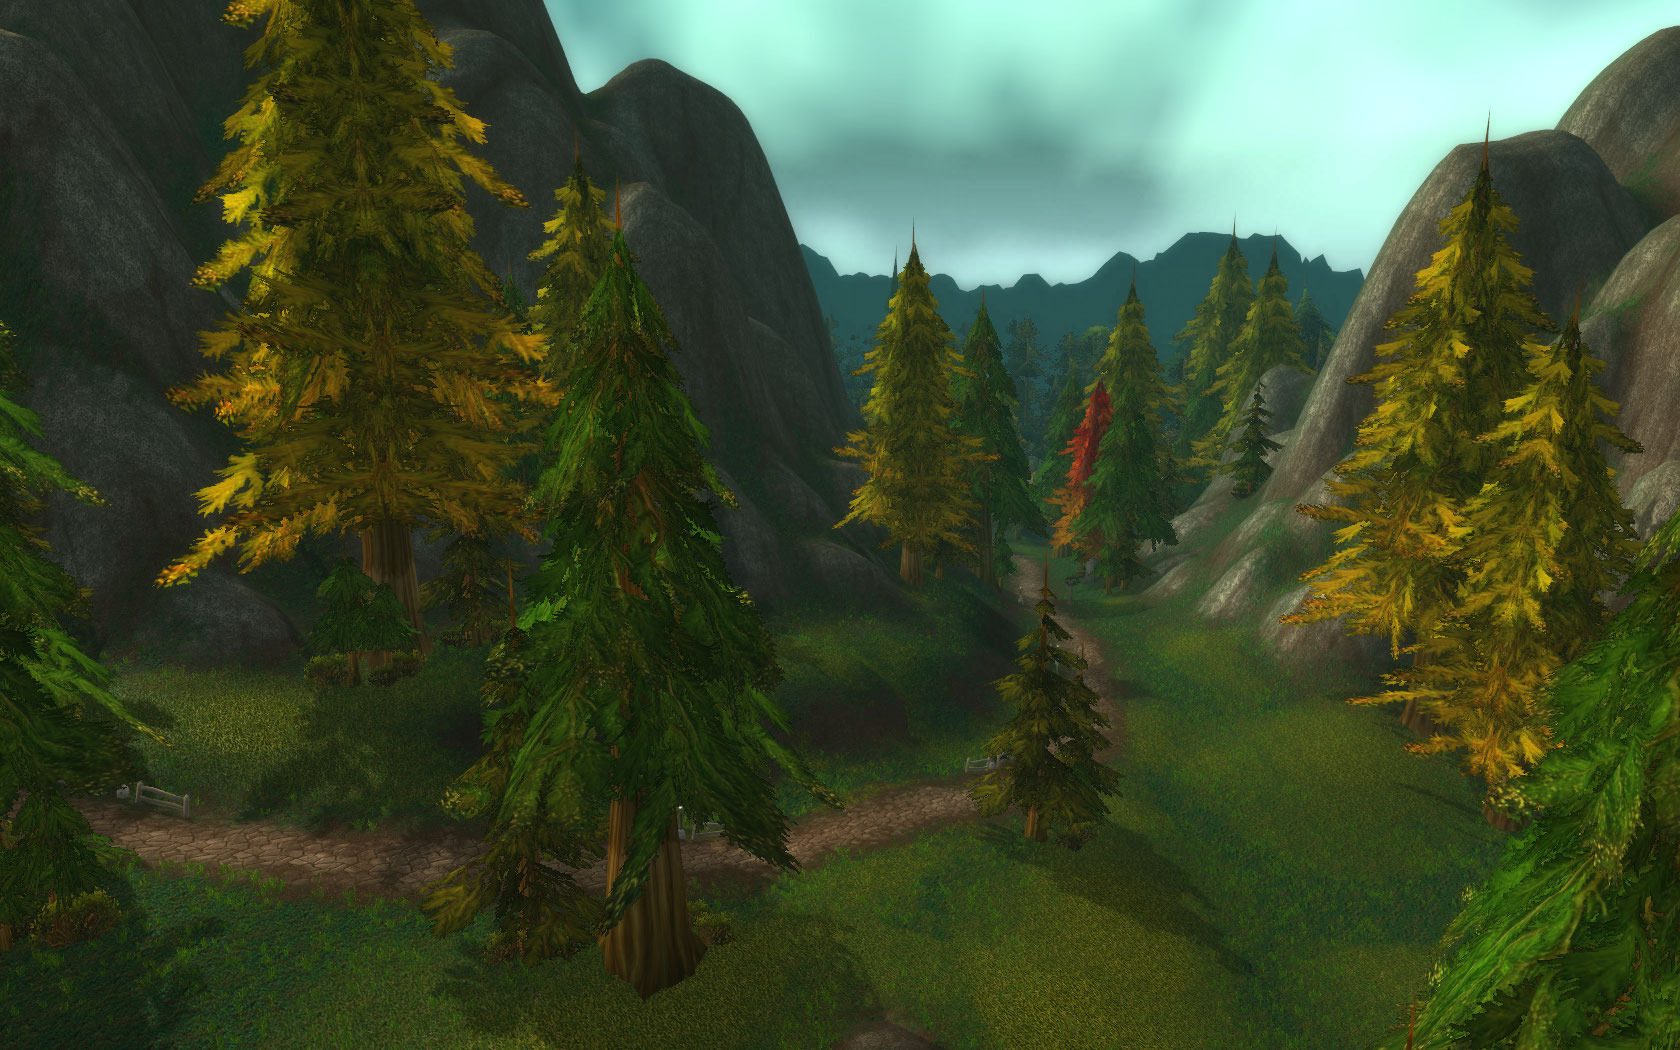 World of Warcraft: Alteracgebirge